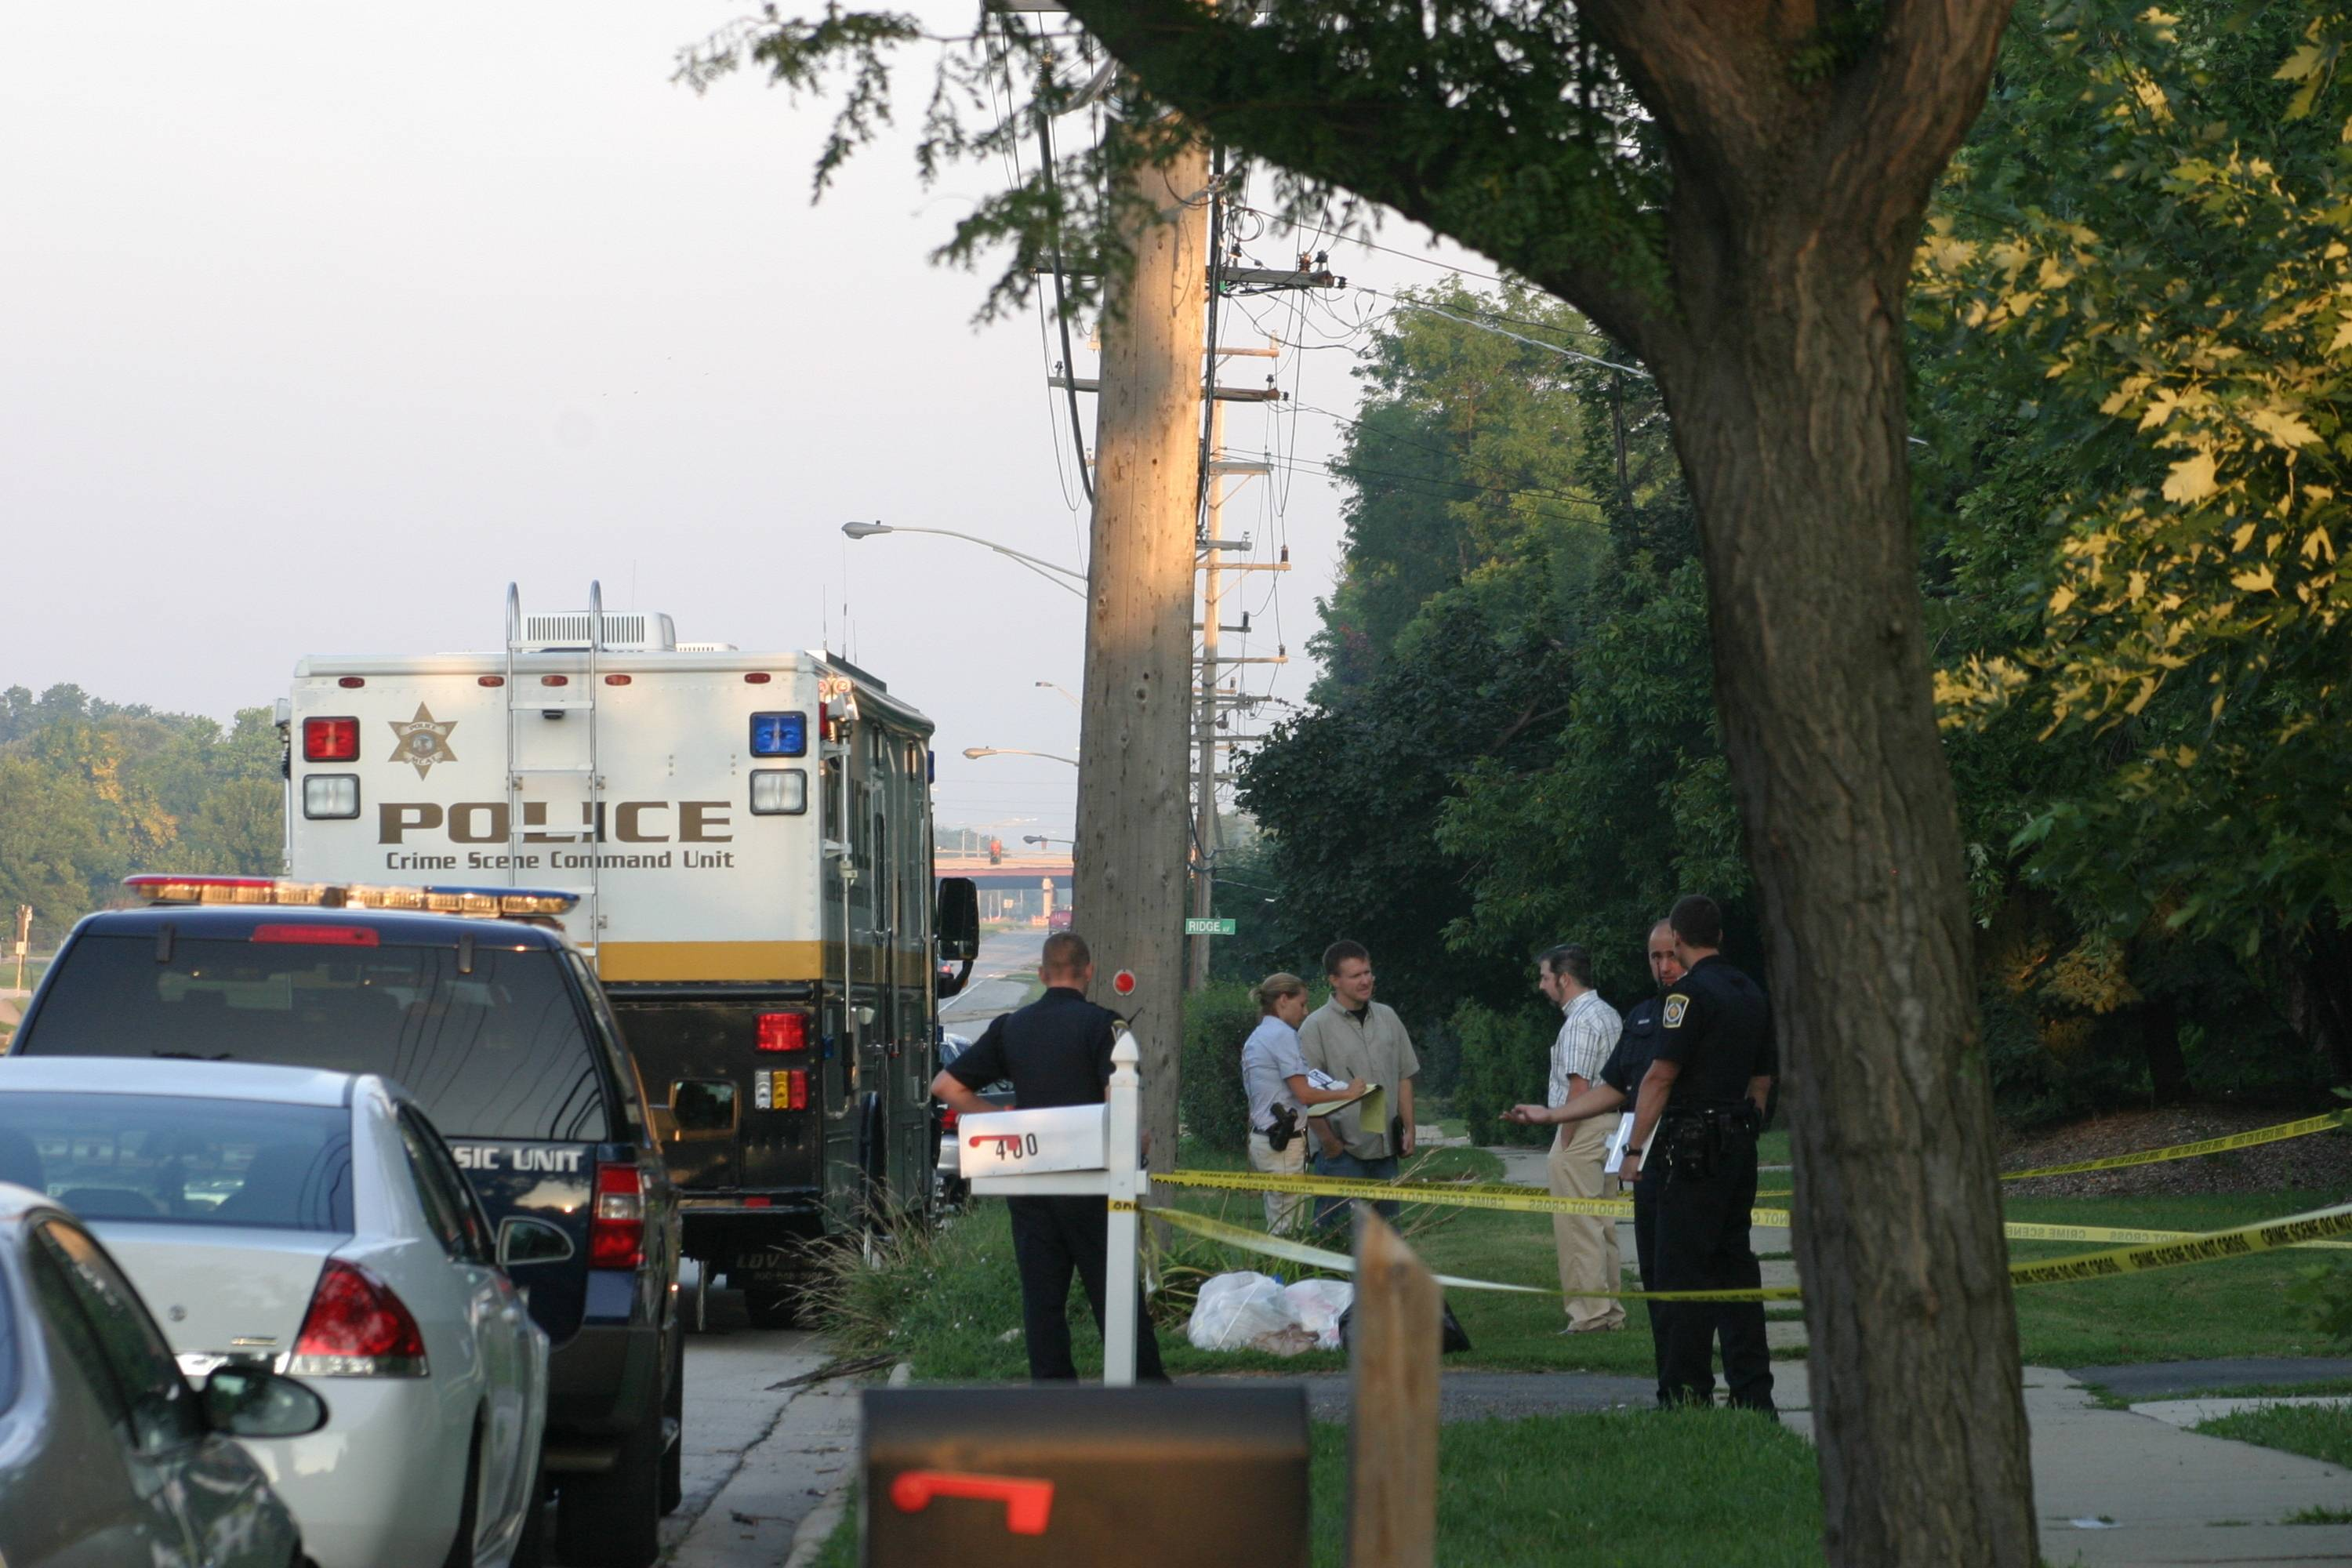 Scene from a standoff early this morning in Arlington Heights.